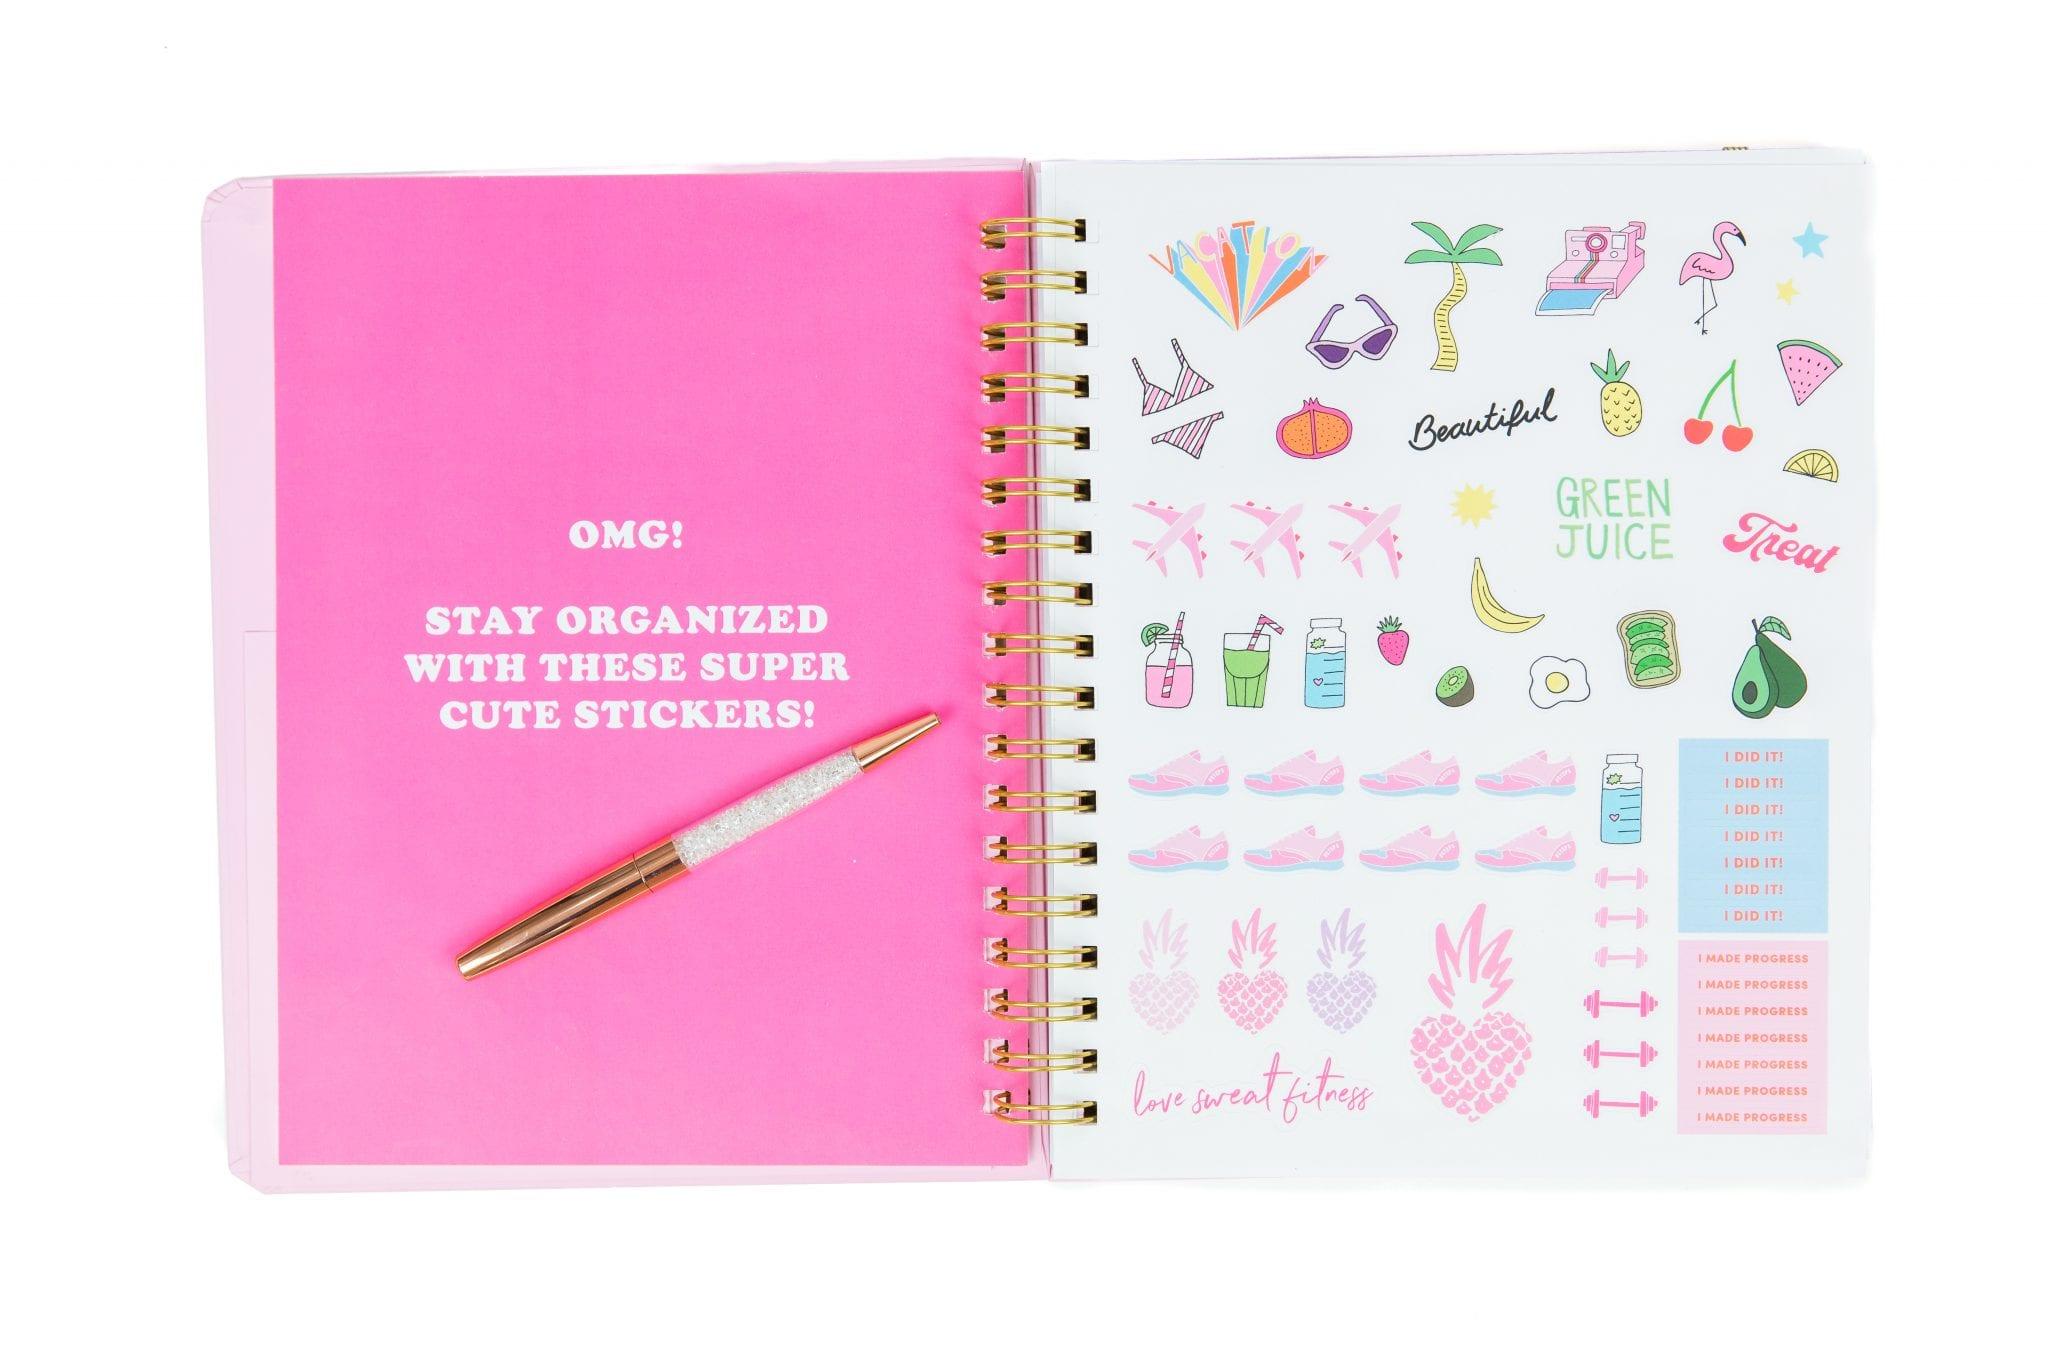 The first LSF sticker sheet comes exclusively with our brand new #Goals 2019 Planner!